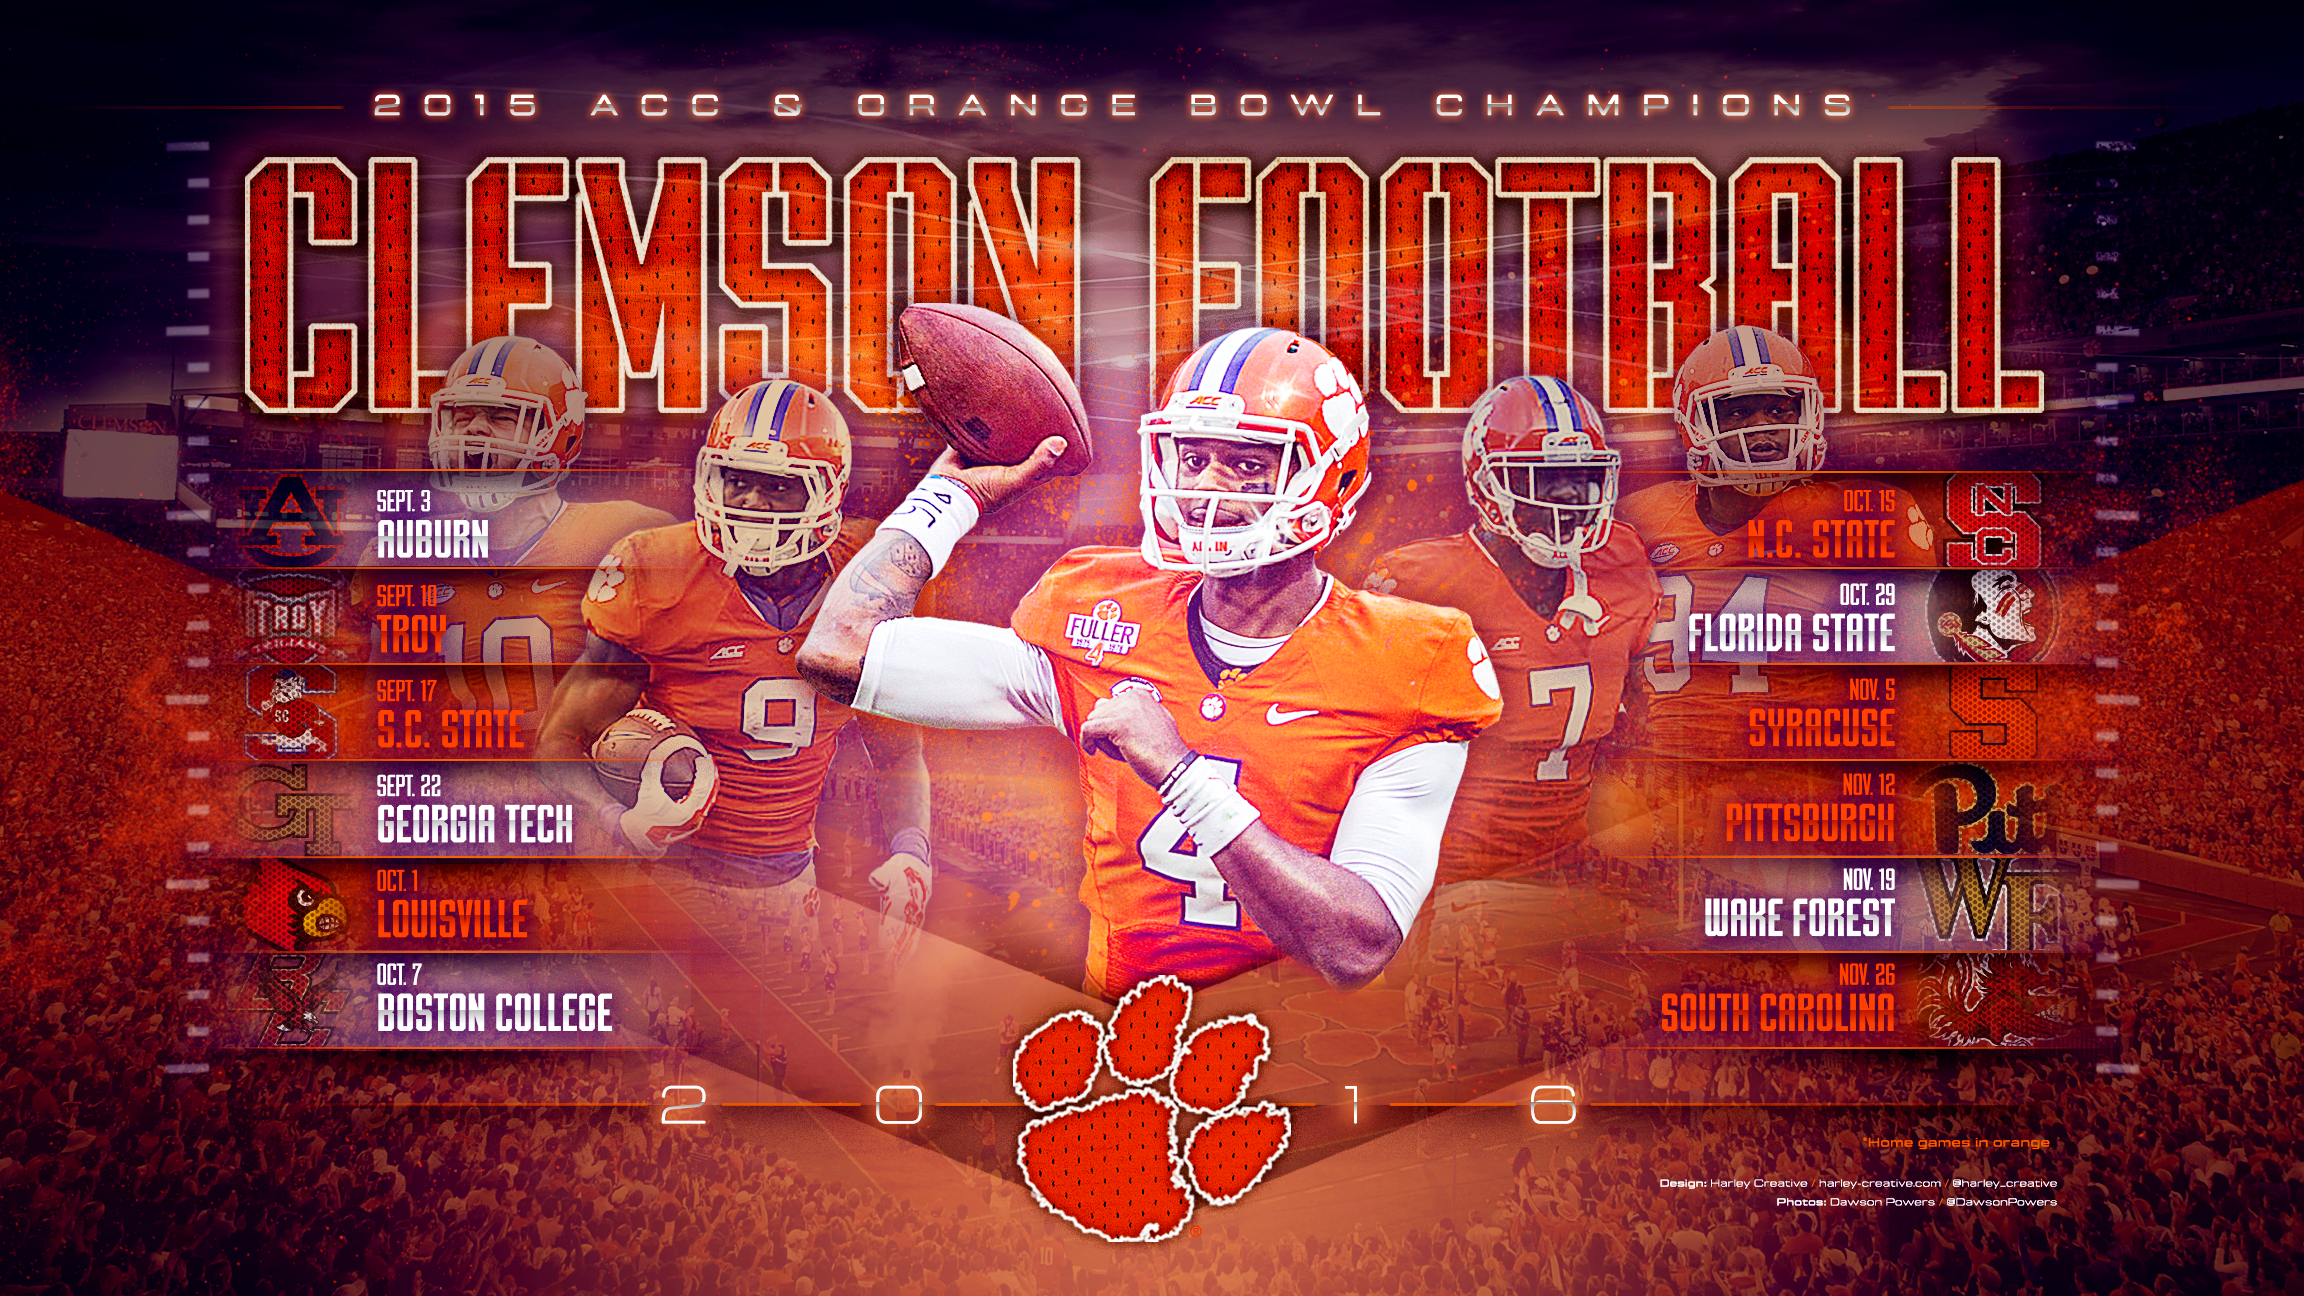 harley creative 2016 clemson football wallpaper